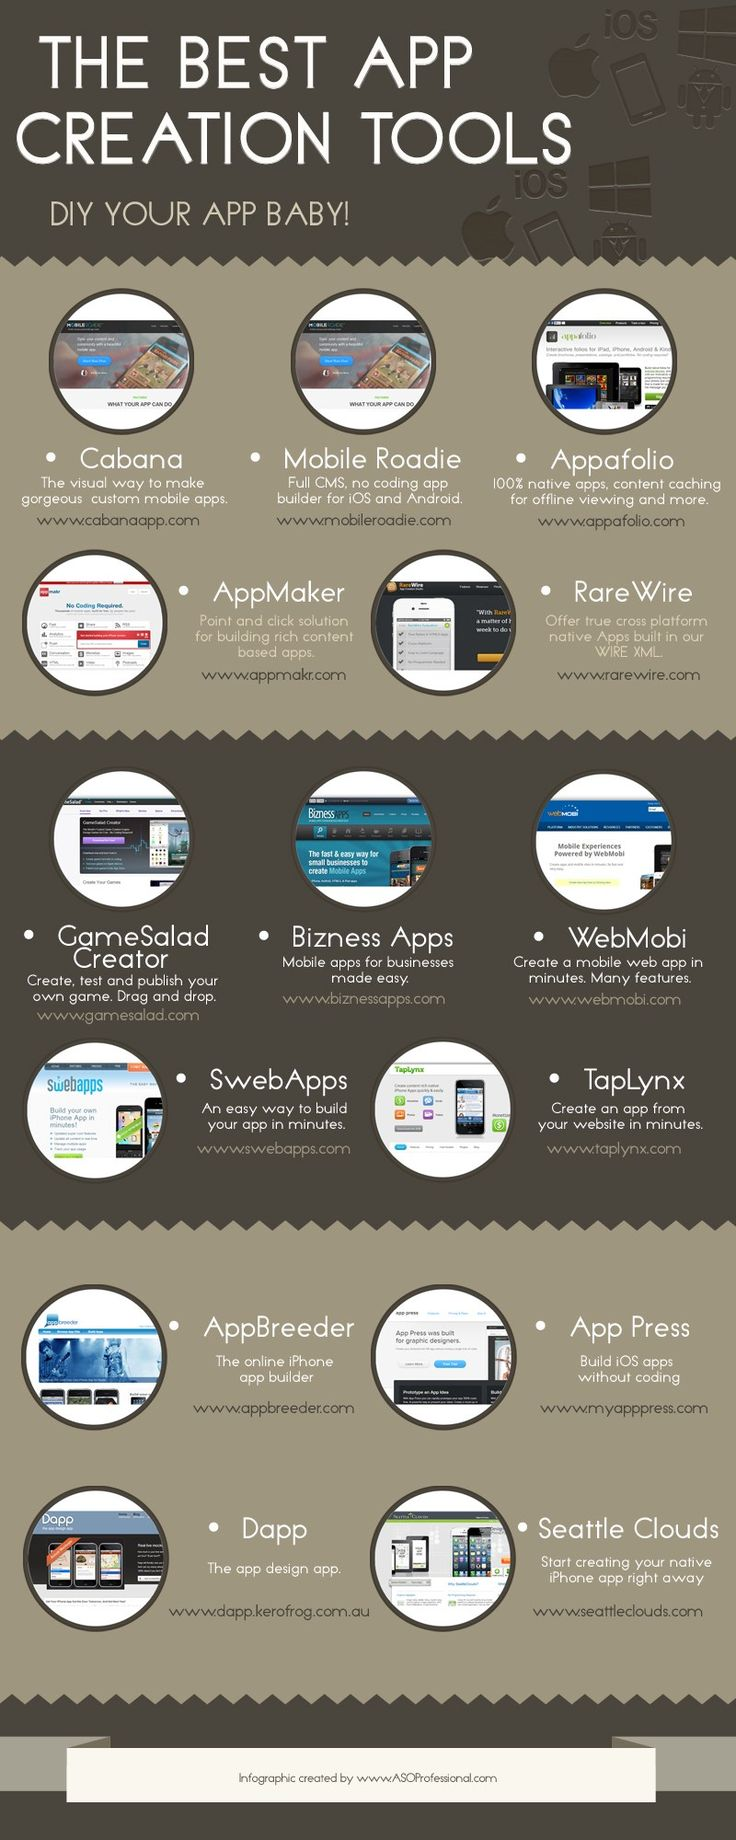 Best App Creation Tools - Usually we think that creating or developing an app is difficult. Well, think twice, now a days it is getting faster and cheaper everyday. There is a huge range of app creation tools, and in this infographic we want to inspire you to go DIY and create your own app.